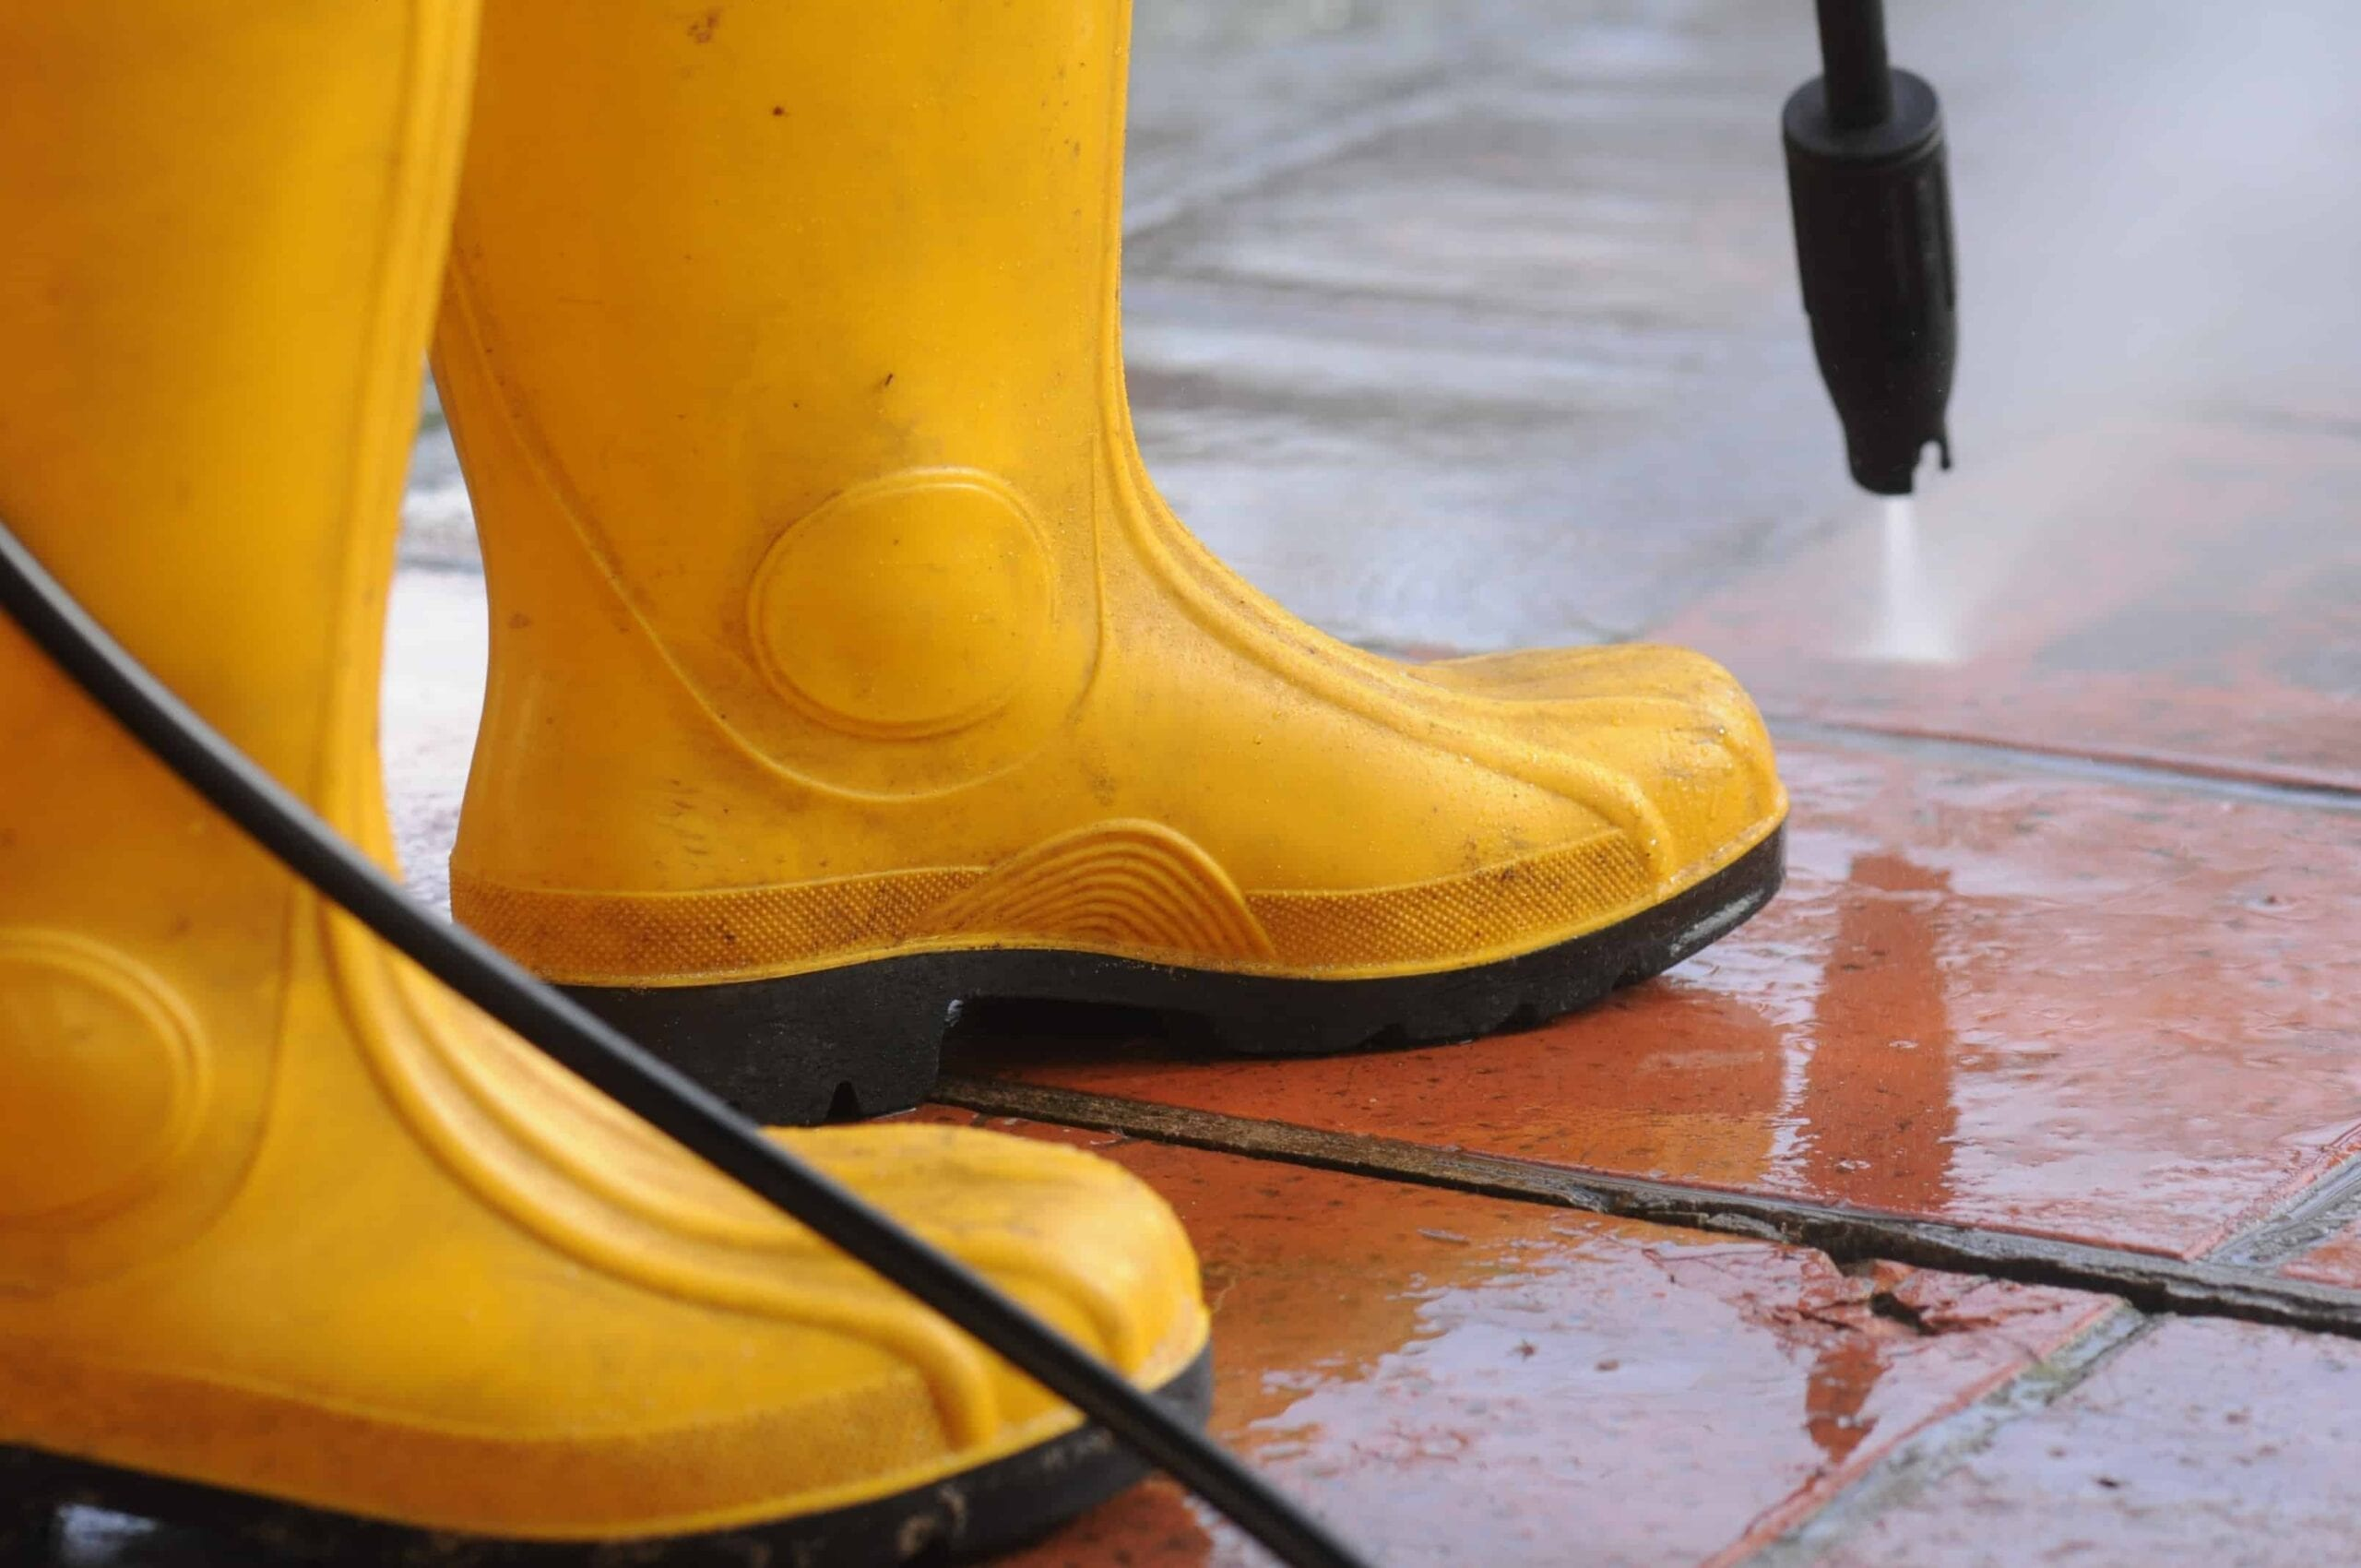 person wearing yellow rubber boots with high pressure water nozzle cleaning dirt tiles scaled